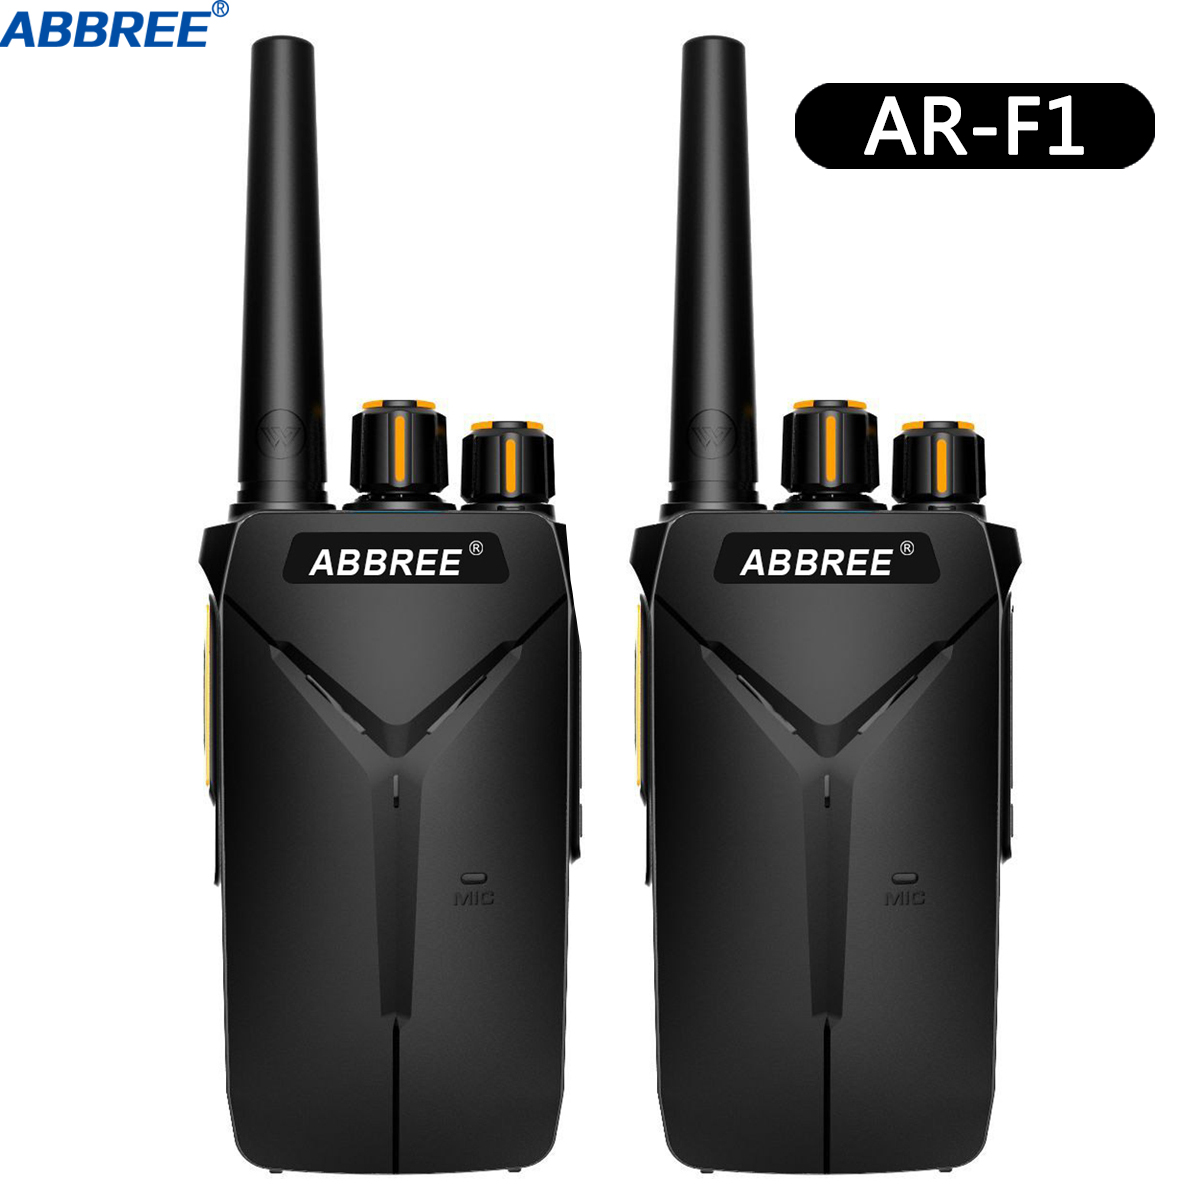 ABBREE Walkie-Talkie Woki Toki VOX Two-Way-Radio Long-Range UHF BF-888S Cb Portable Ham